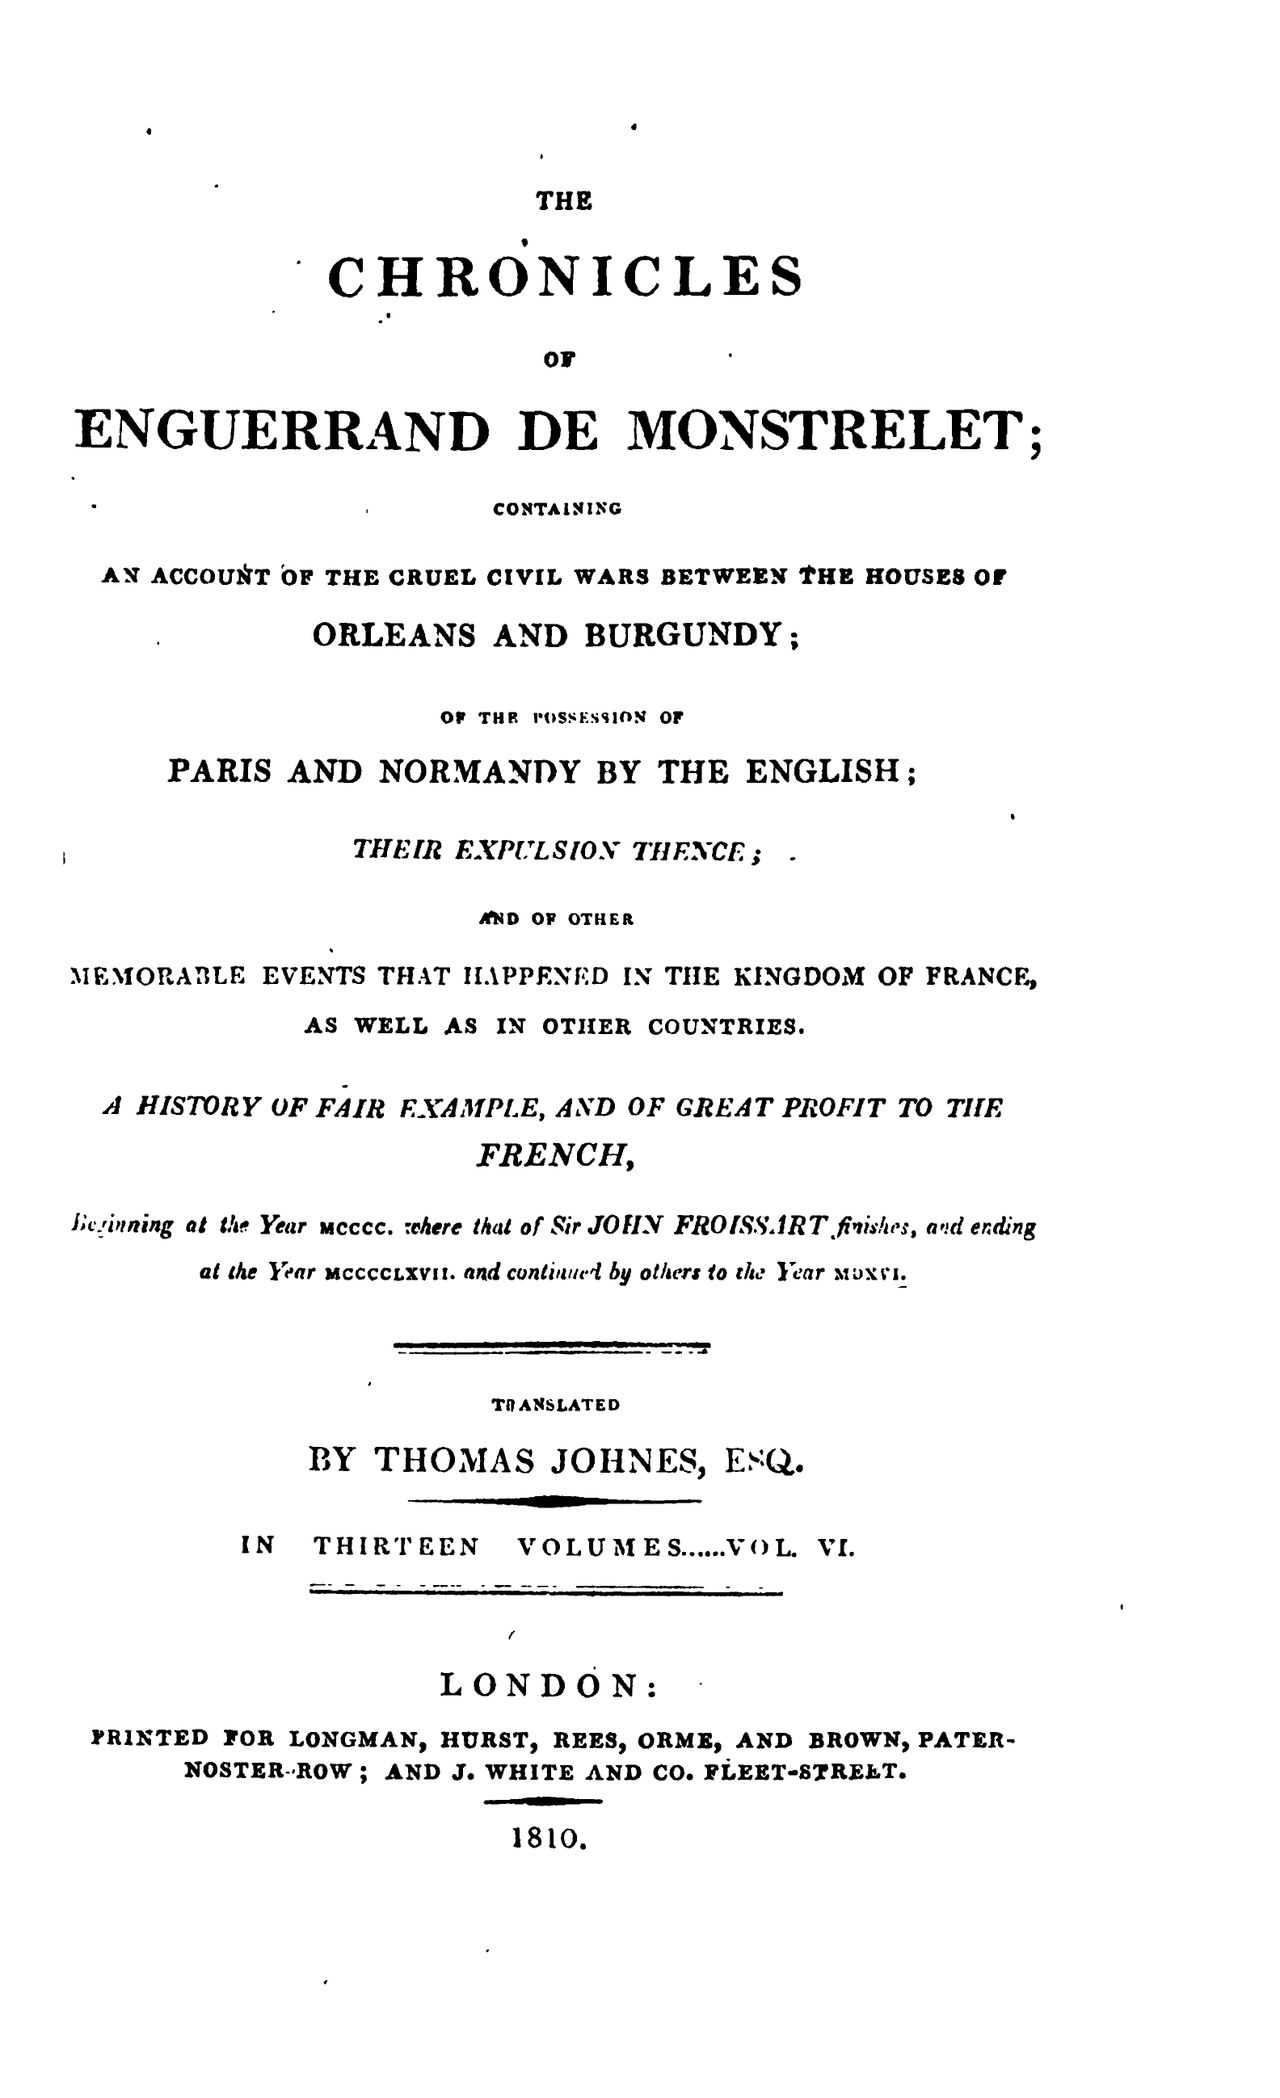 Enguerrand de Monstrelet chronicle vol.6